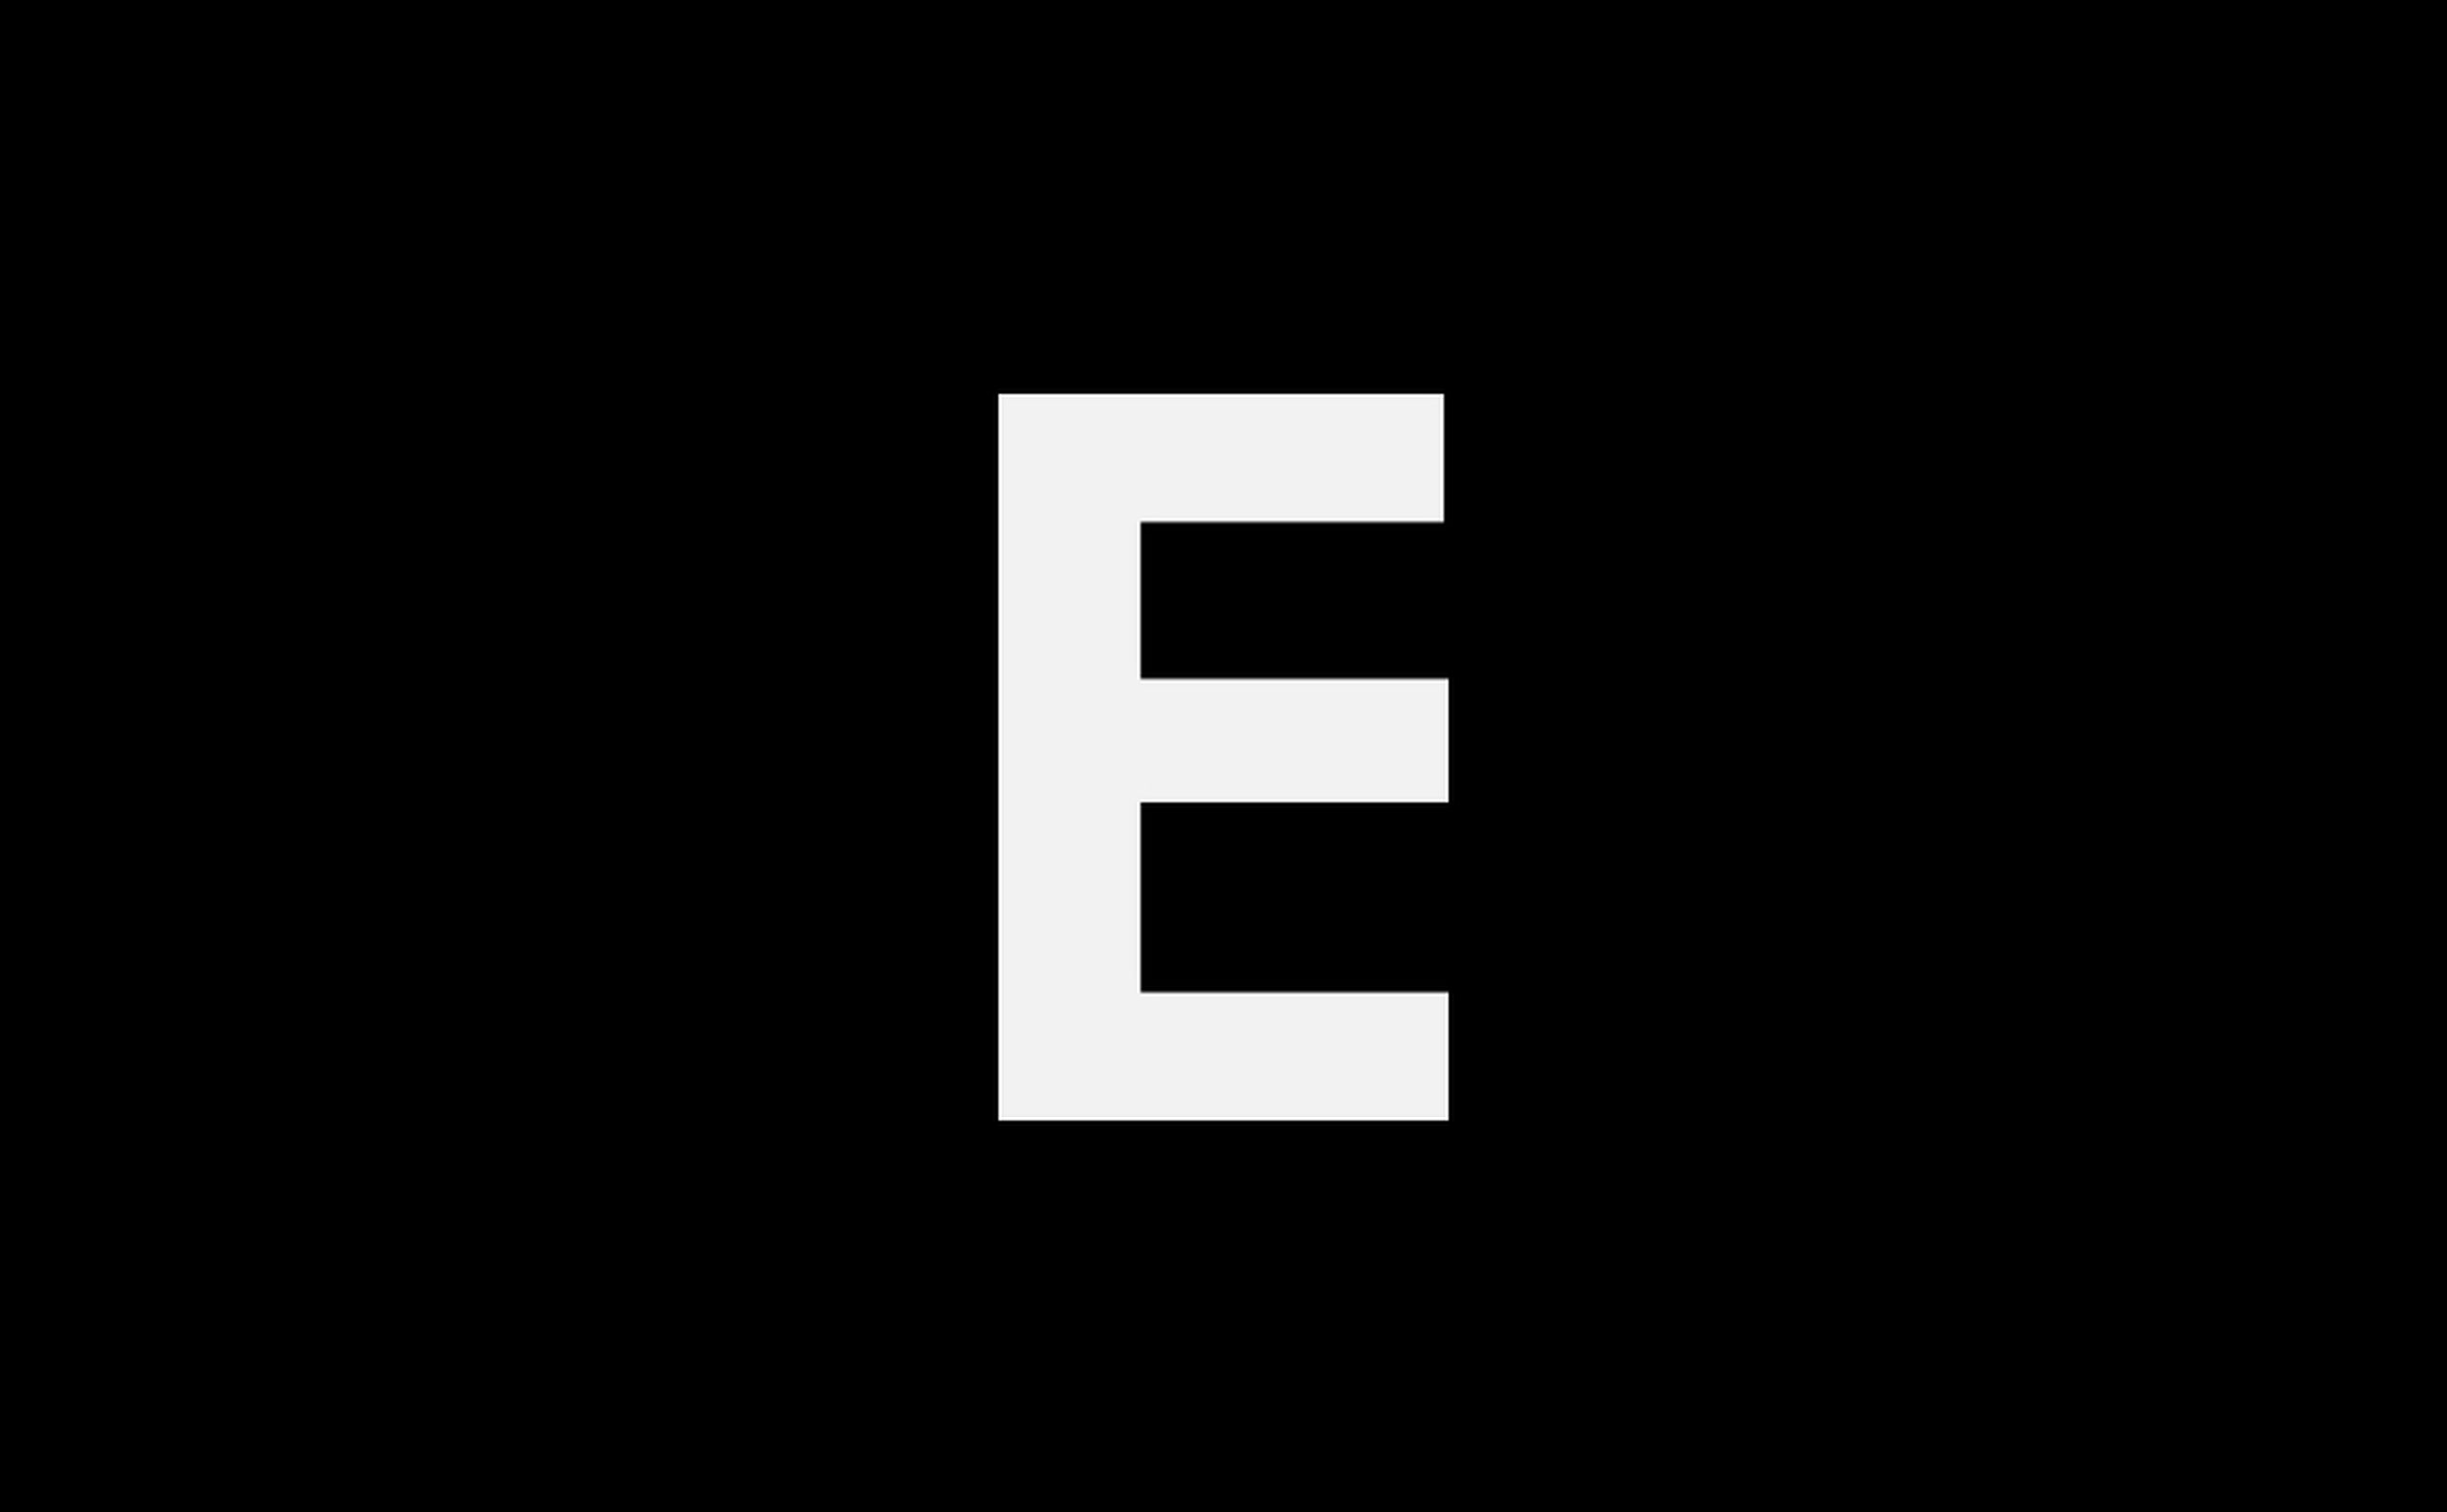 focus on foreground, indoors, table, no people, glass, glass - material, nature, window, drinking glass, household equipment, wood - material, transparent, food and drink, close-up, day, illuminated, plant, still life, container, floral pattern